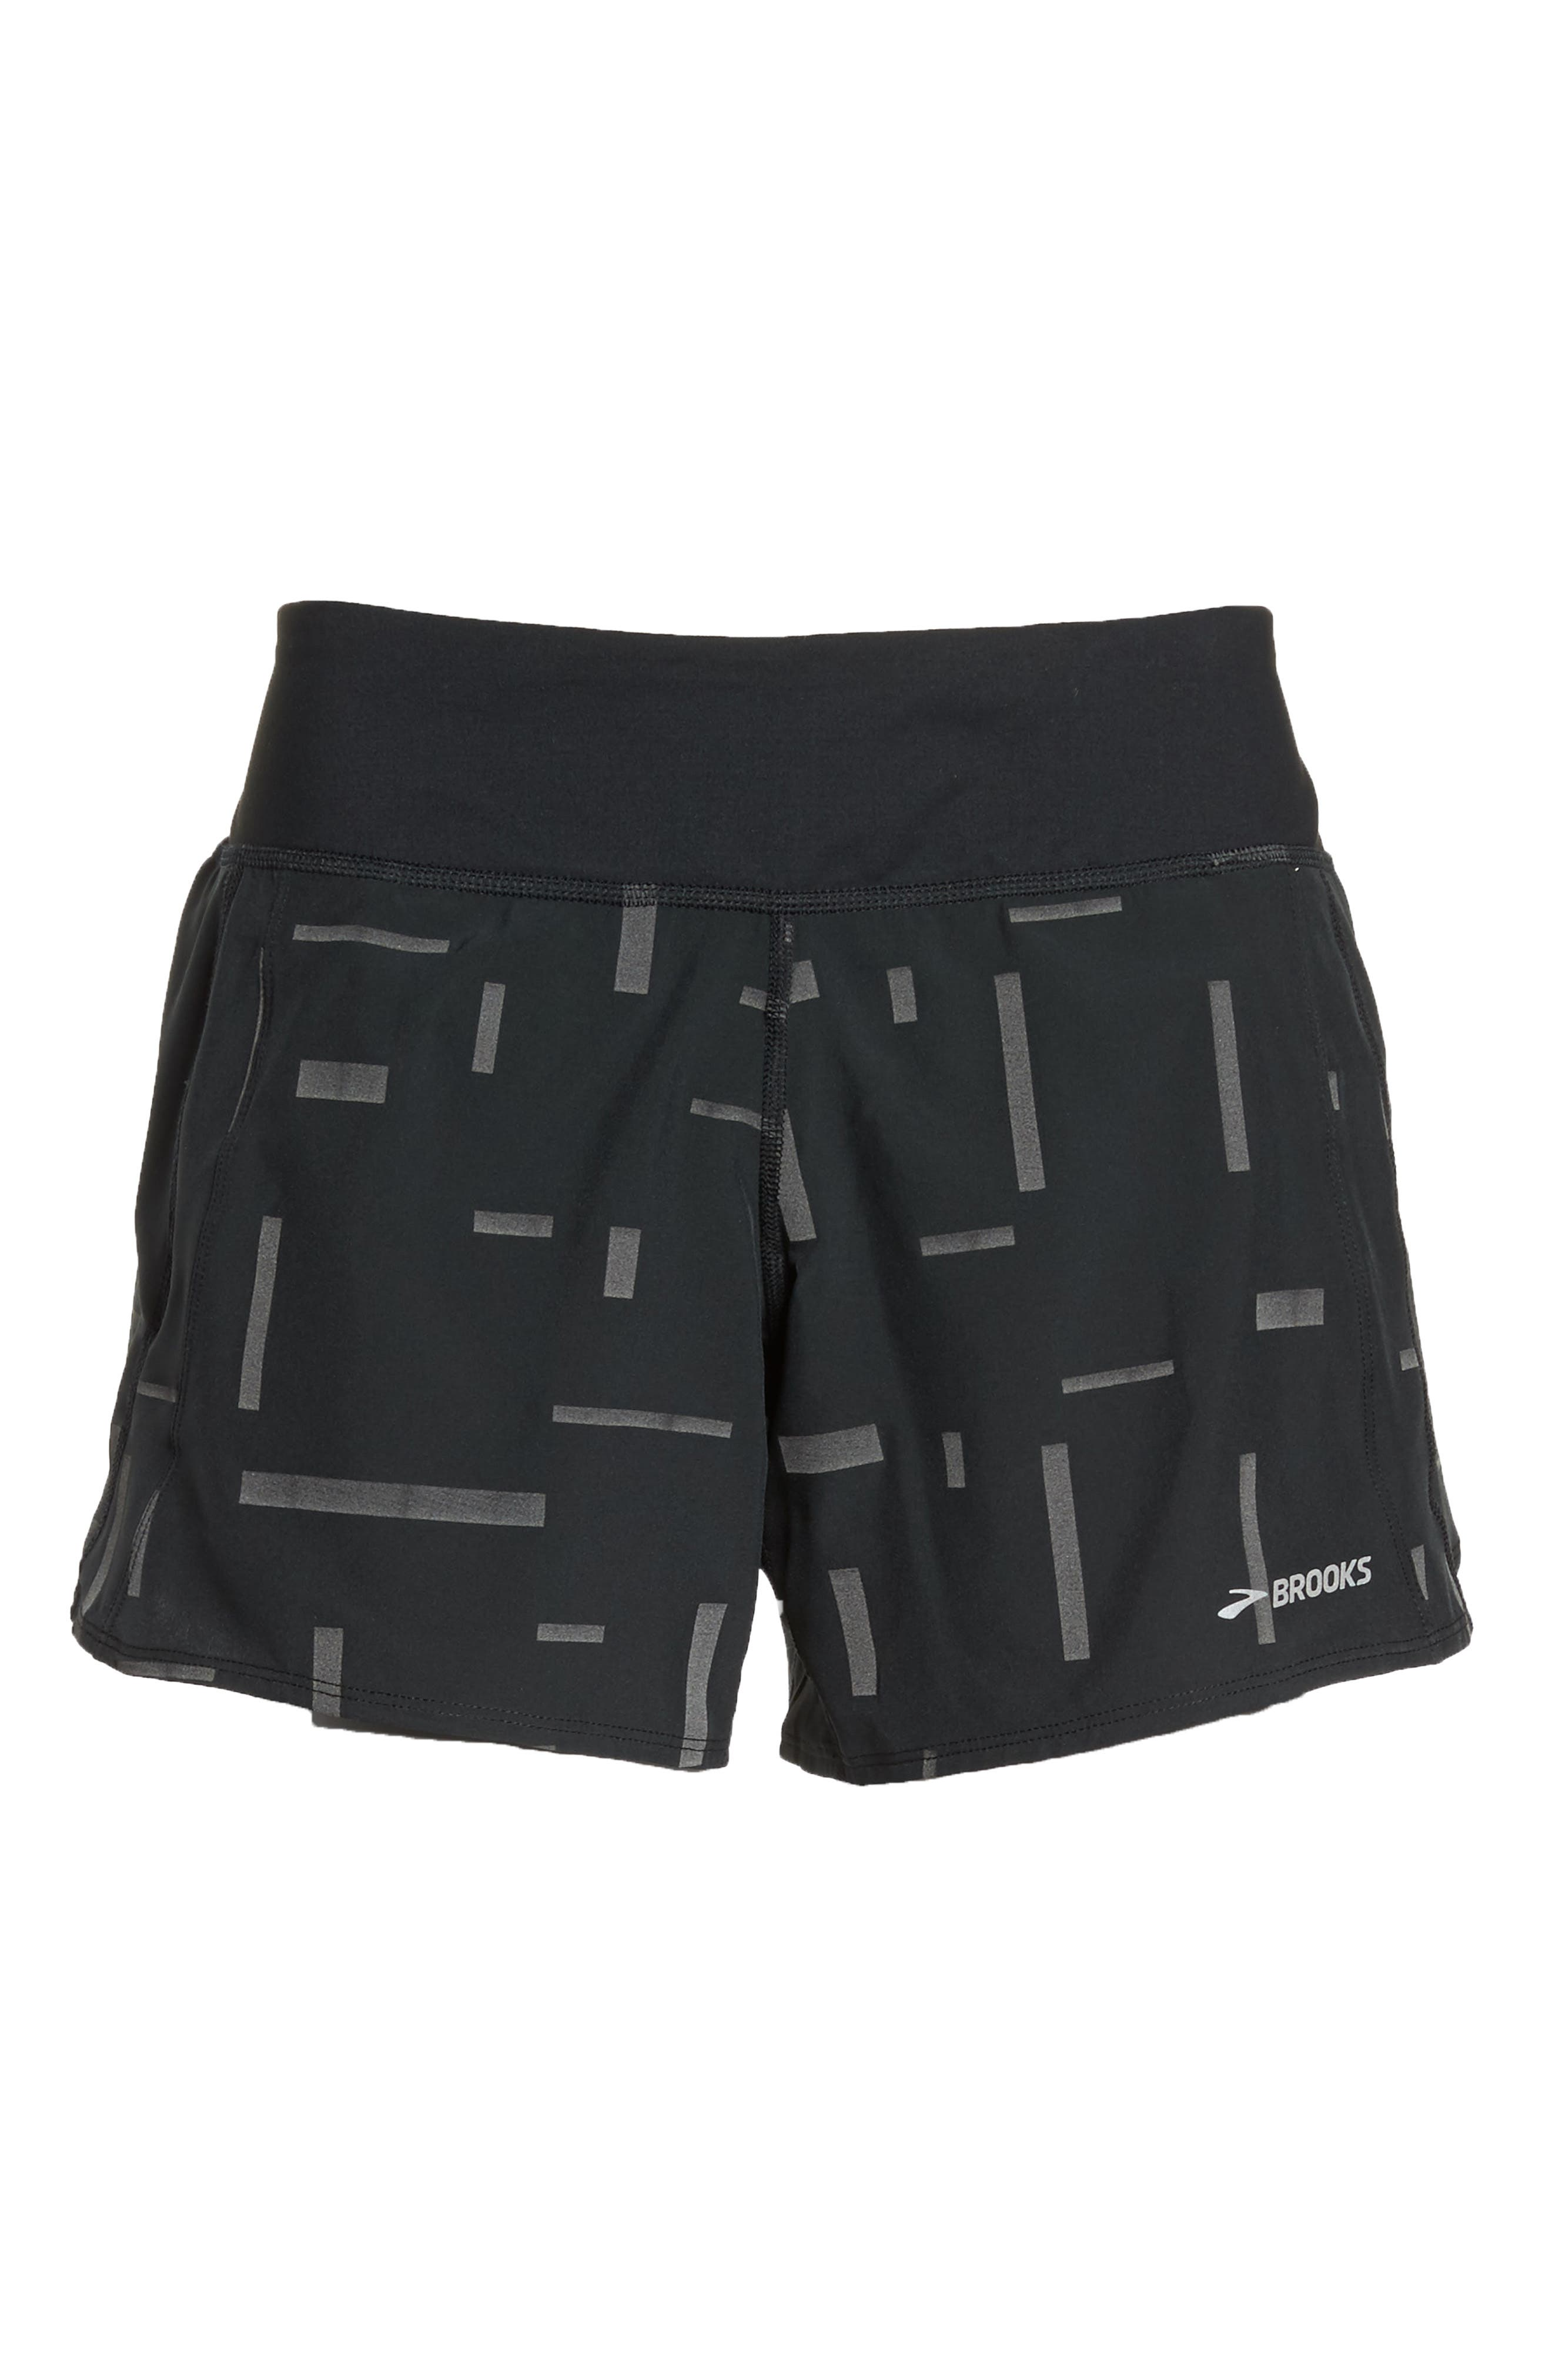 Chaser Running Shorts,                             Alternate thumbnail 7, color,                             Comet Reflective